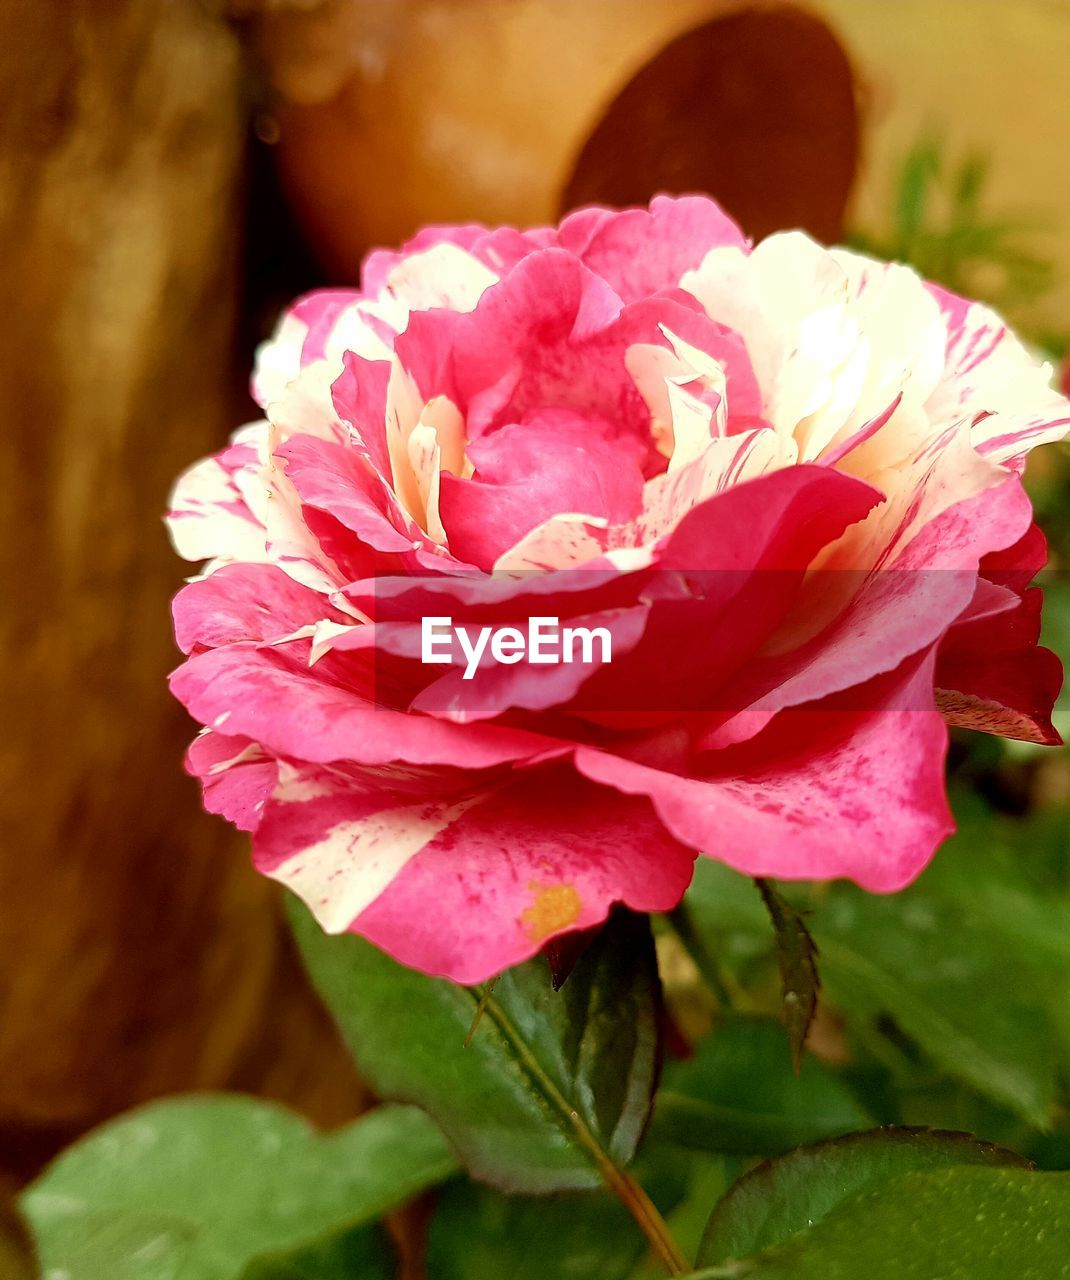 flower, nature, petal, pink color, beauty in nature, fragility, flower head, plant, no people, growth, close-up, rose - flower, leaf, freshness, outdoors, blooming, day